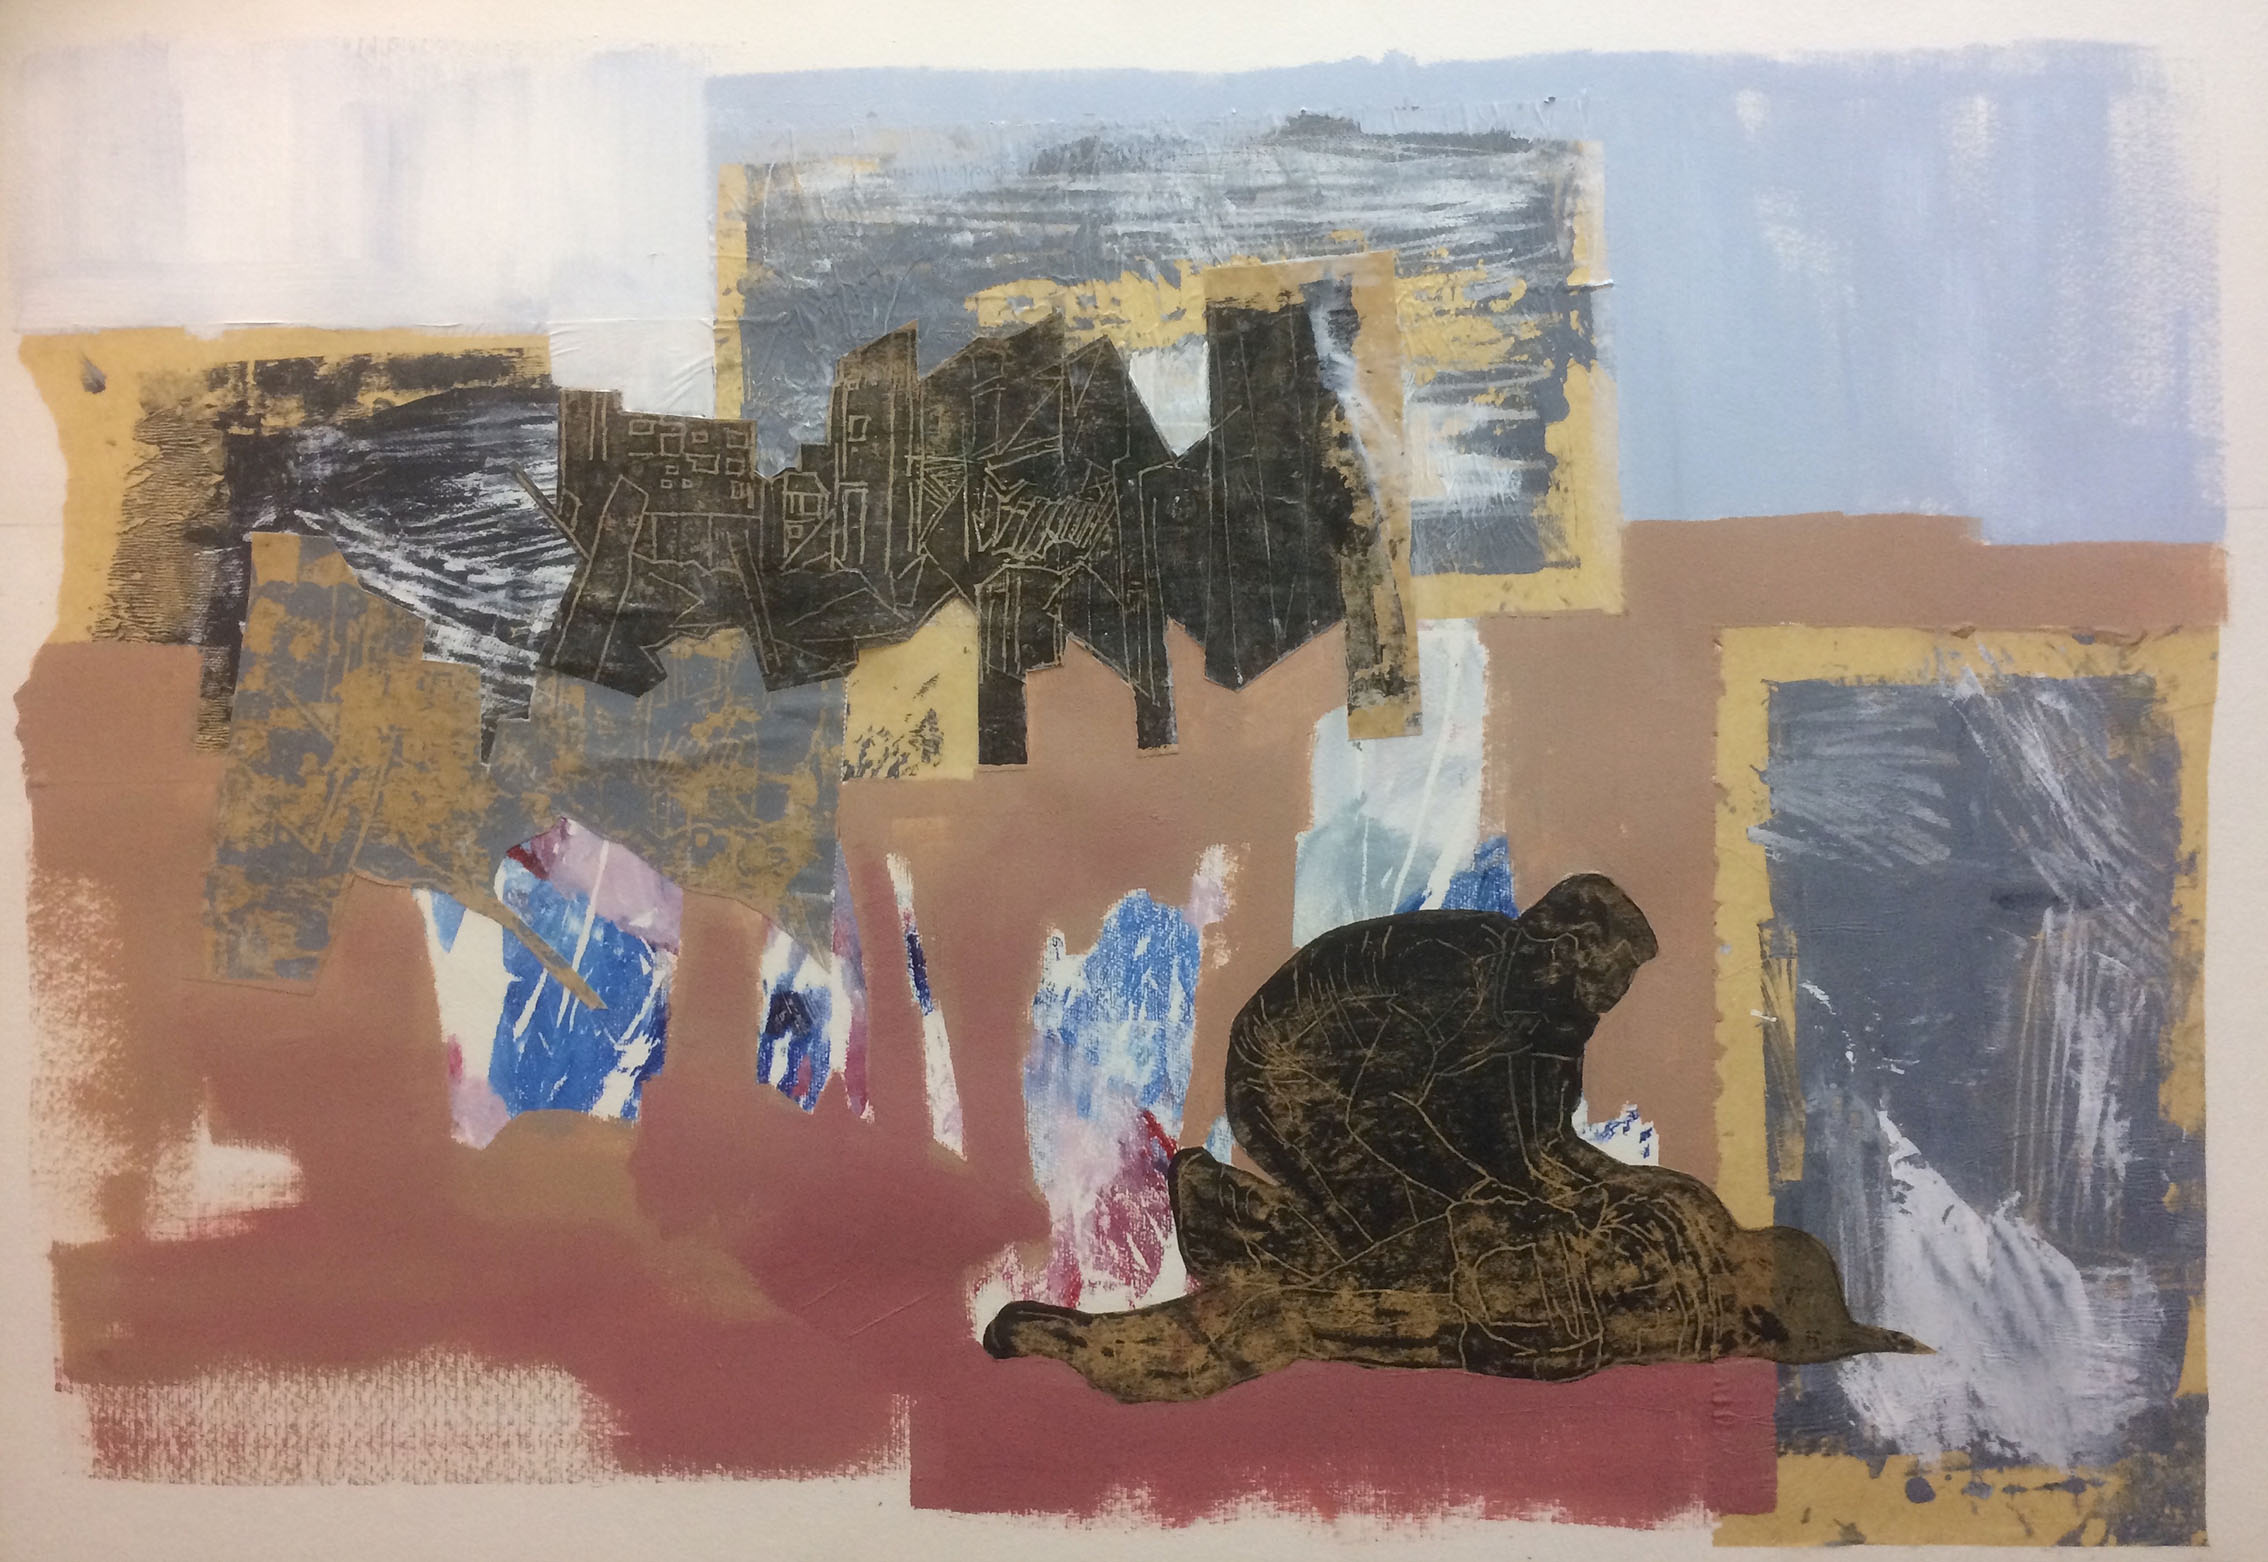 Lisa Chandler, Untitled, 2018, acrylic on Hahnemule Paper